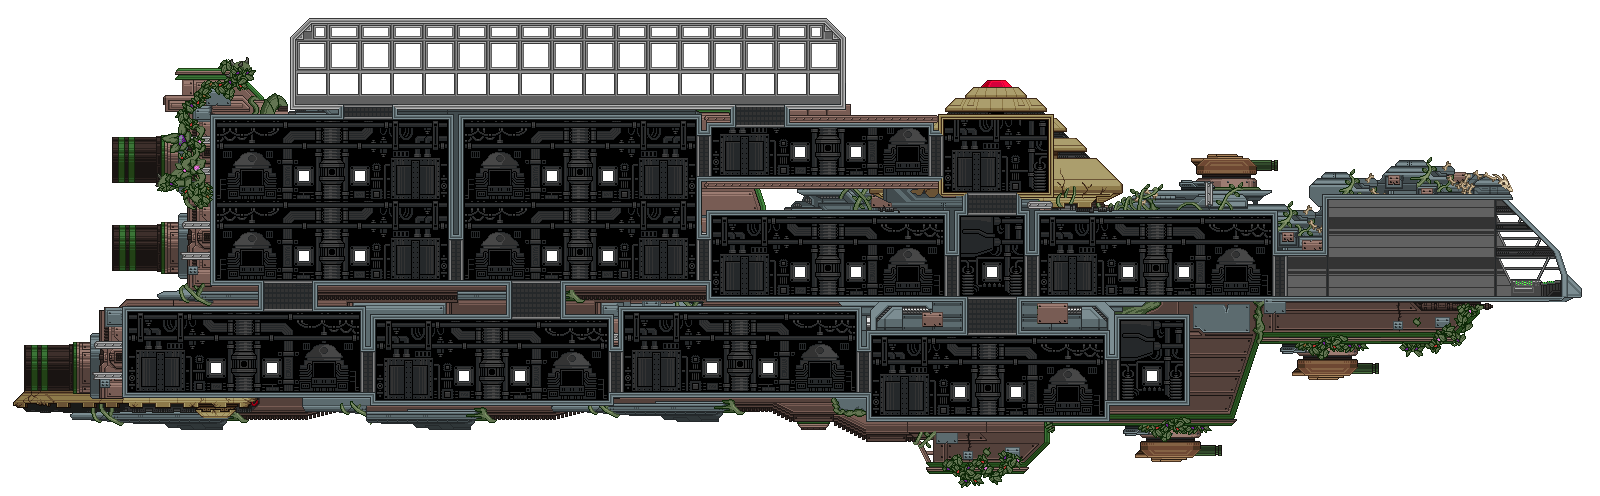 Starbound - Progress on Ships!